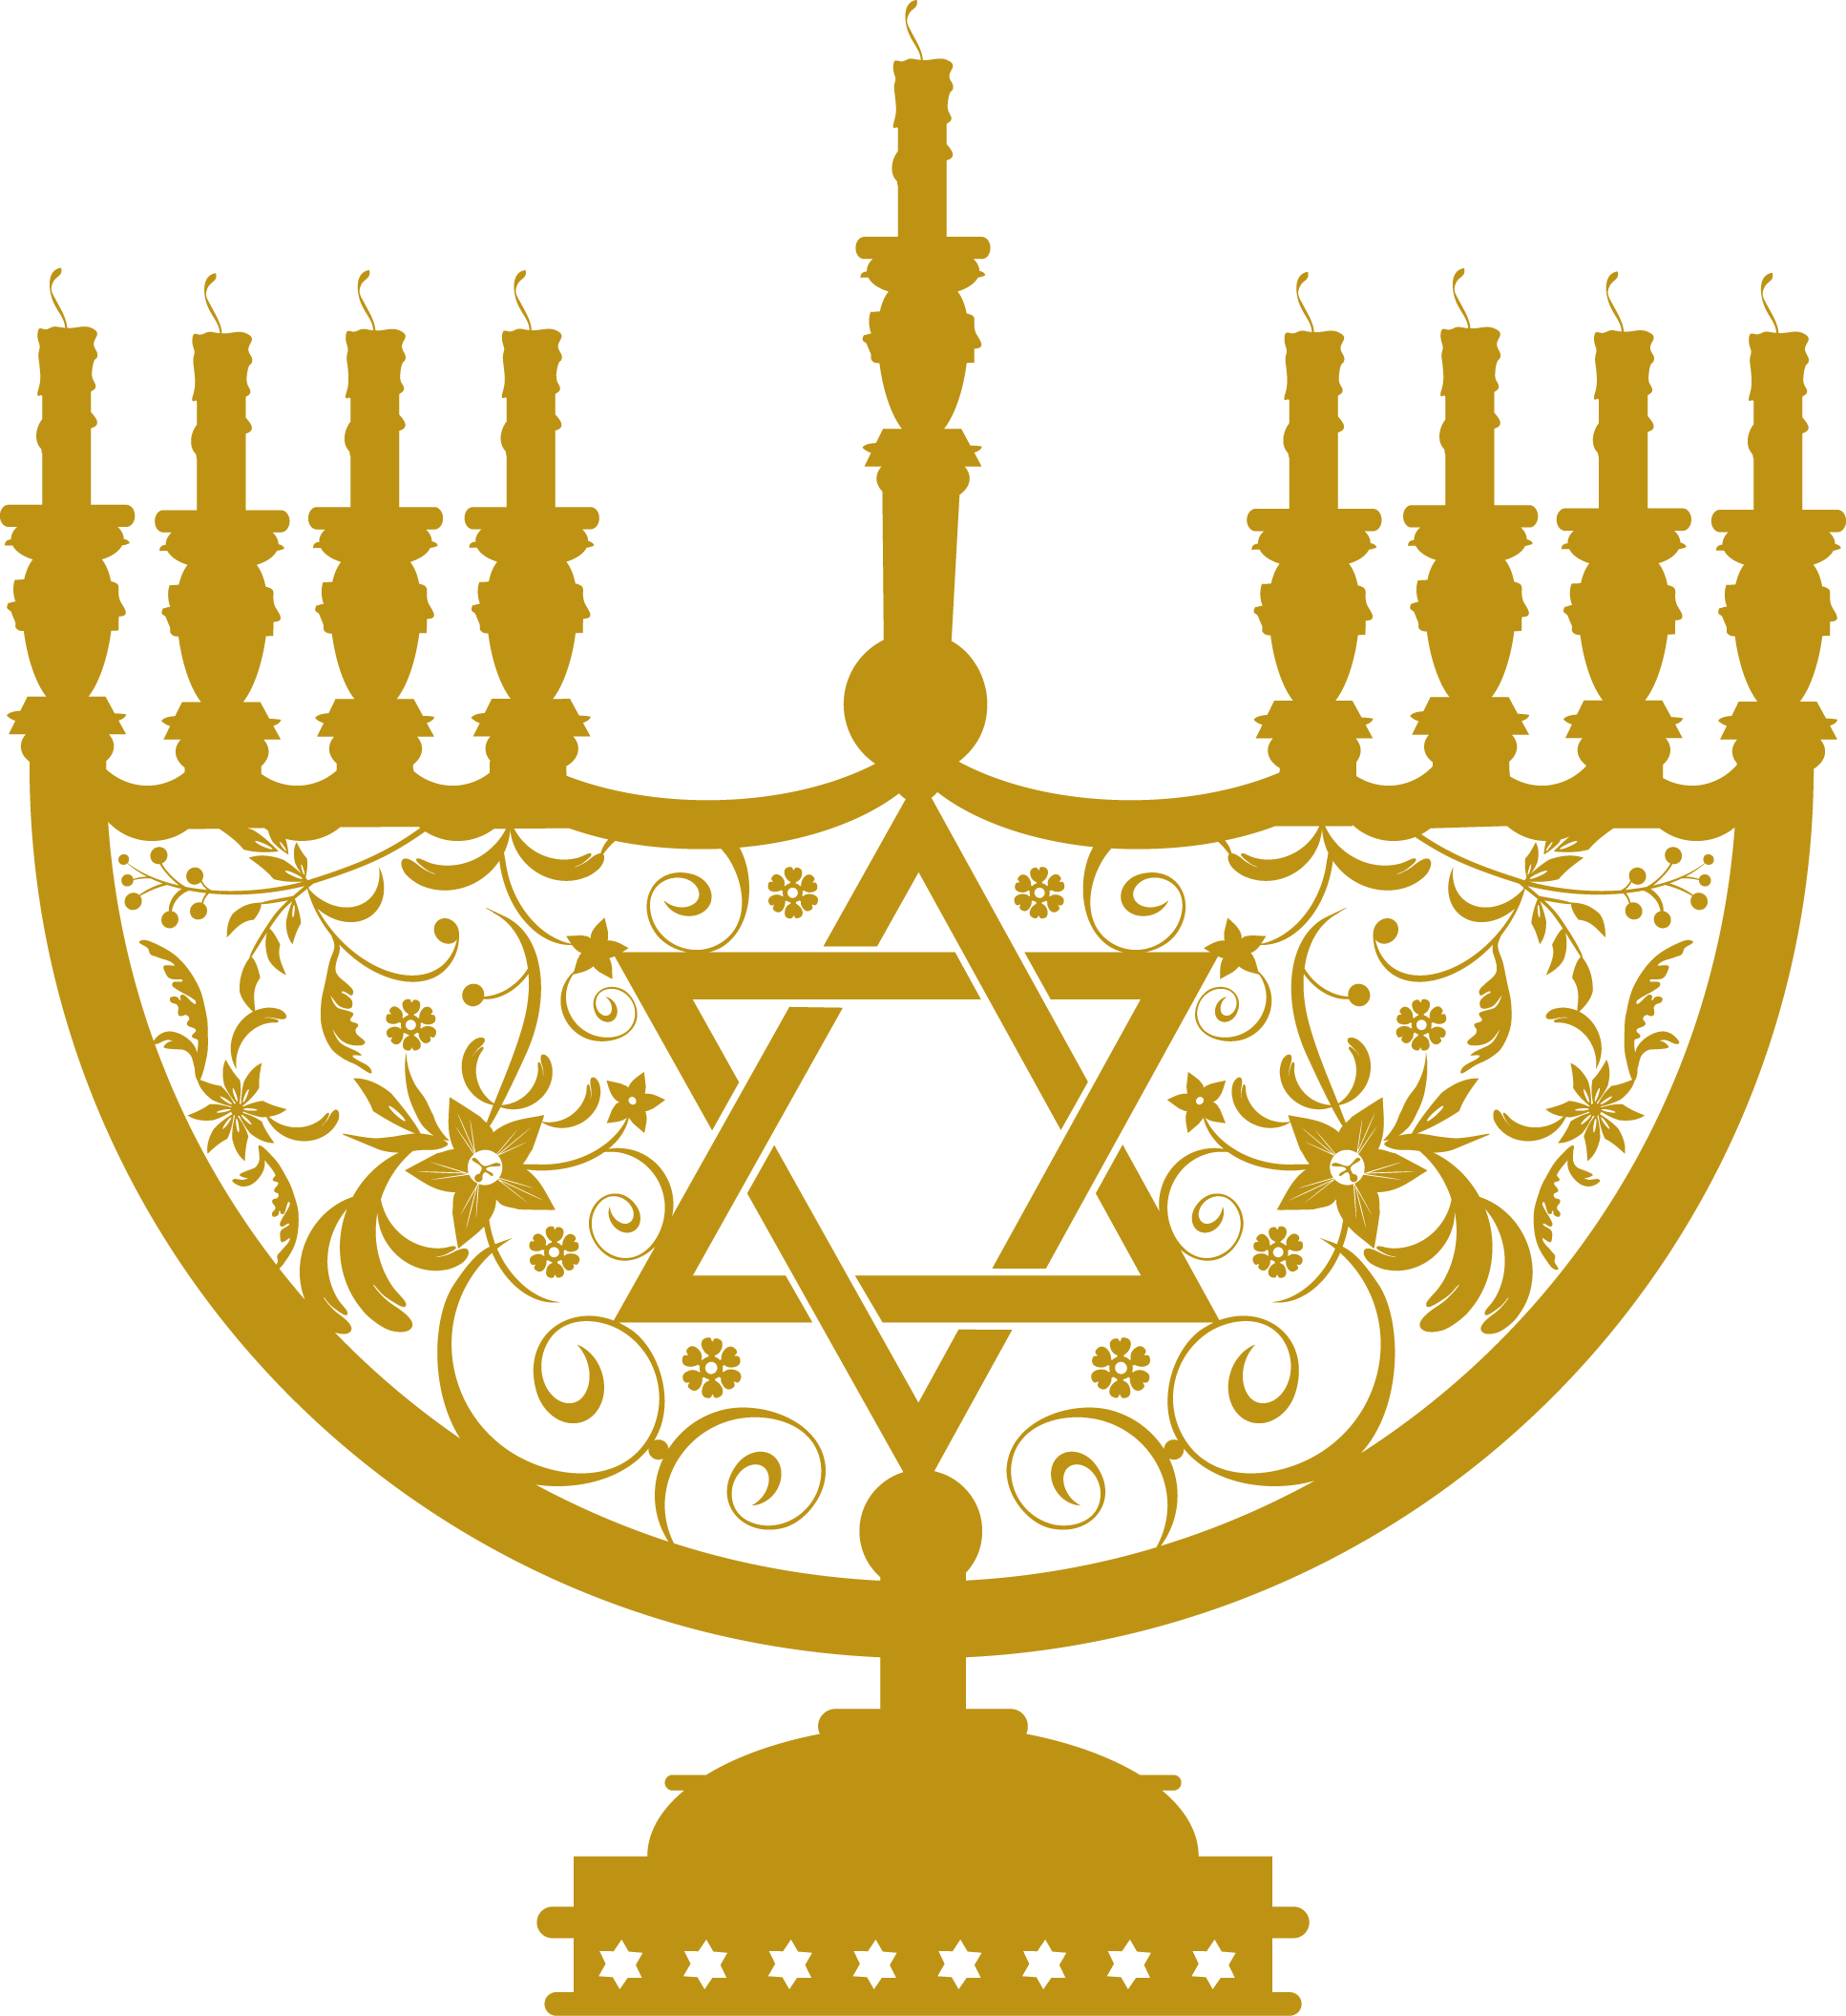 Jewish crown clipart clip royalty free download 28+ Collection of Jewish Menorah Clipart | High quality, free ... clip royalty free download